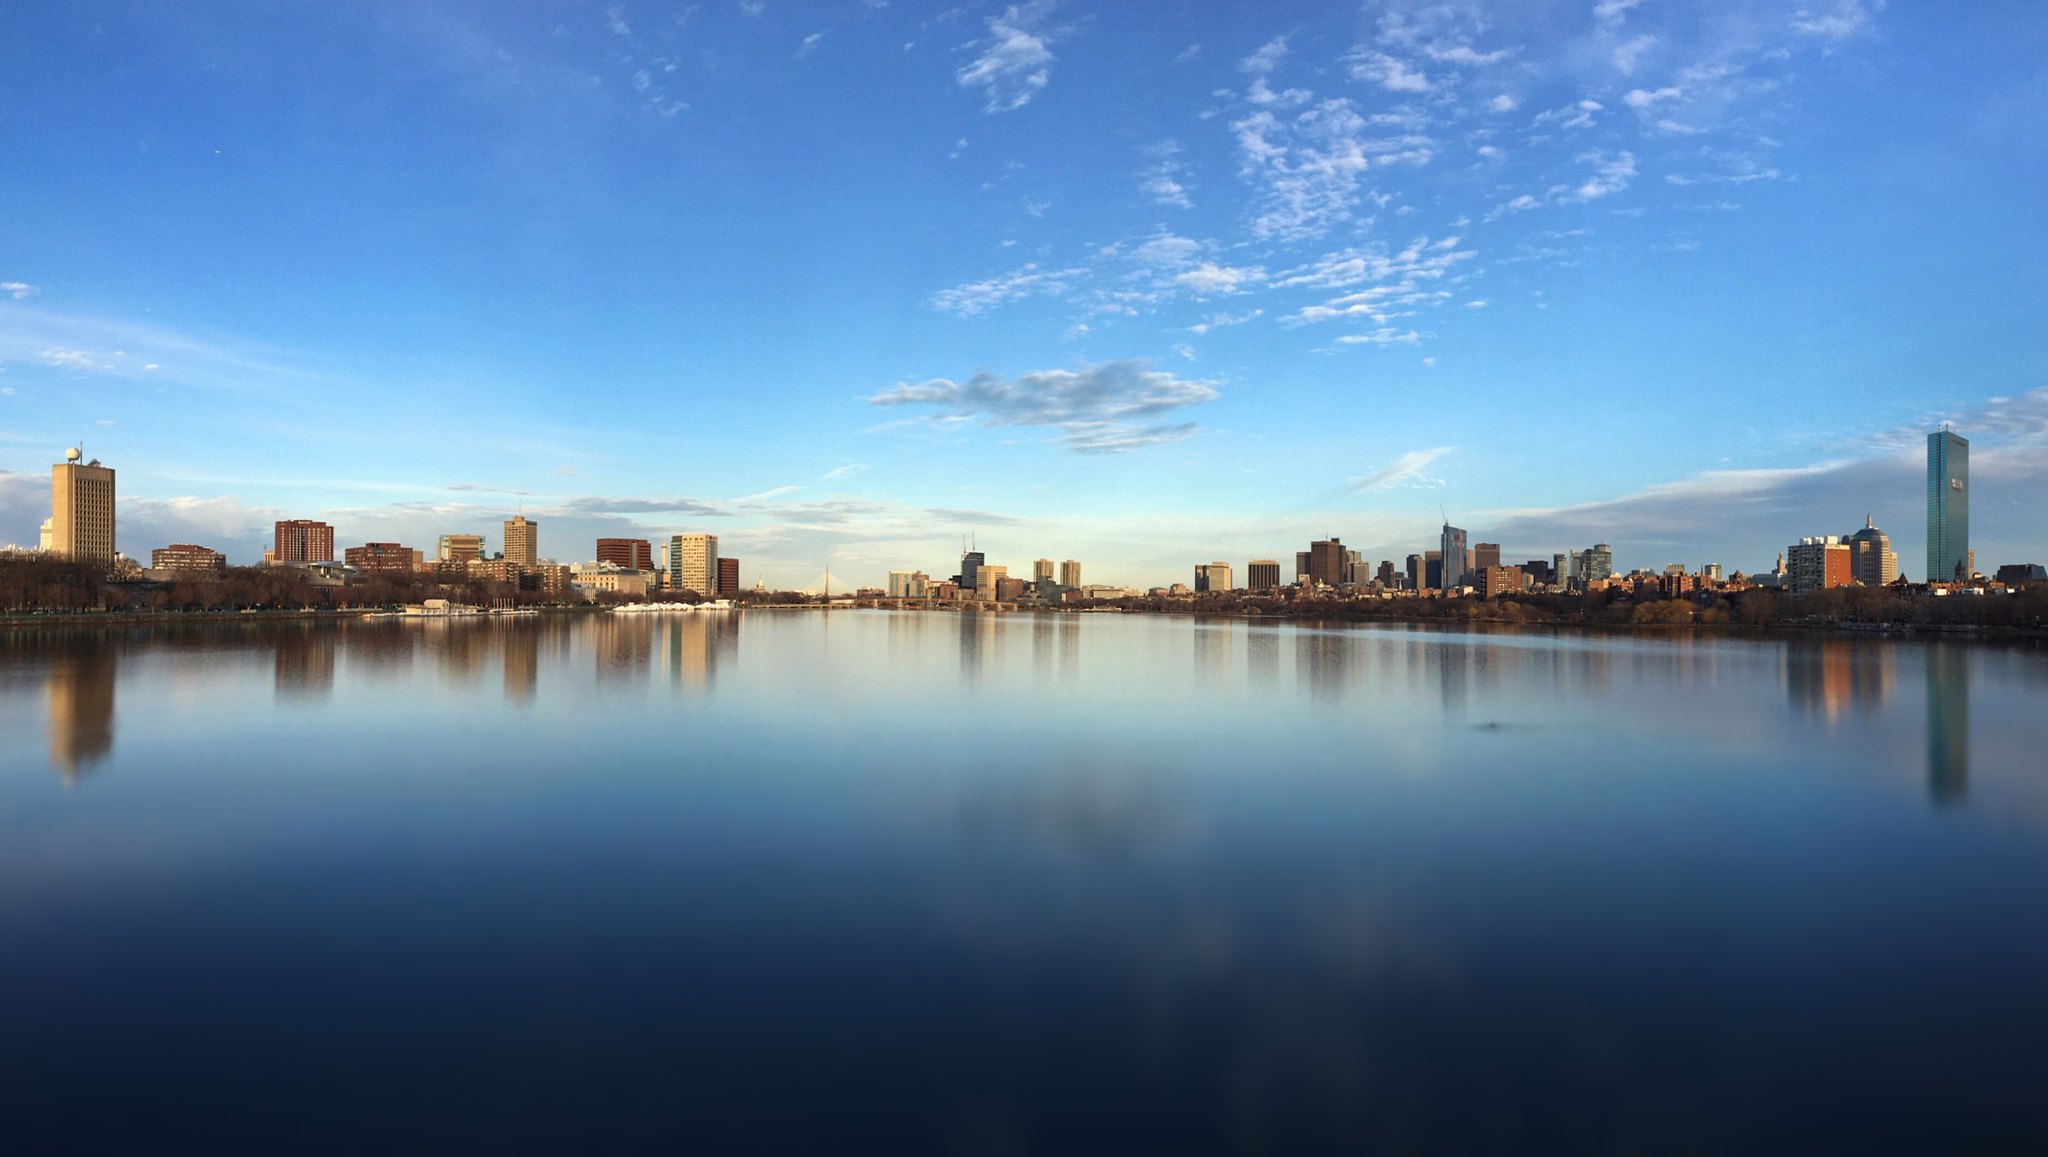 Charles River, Boston, MA #1